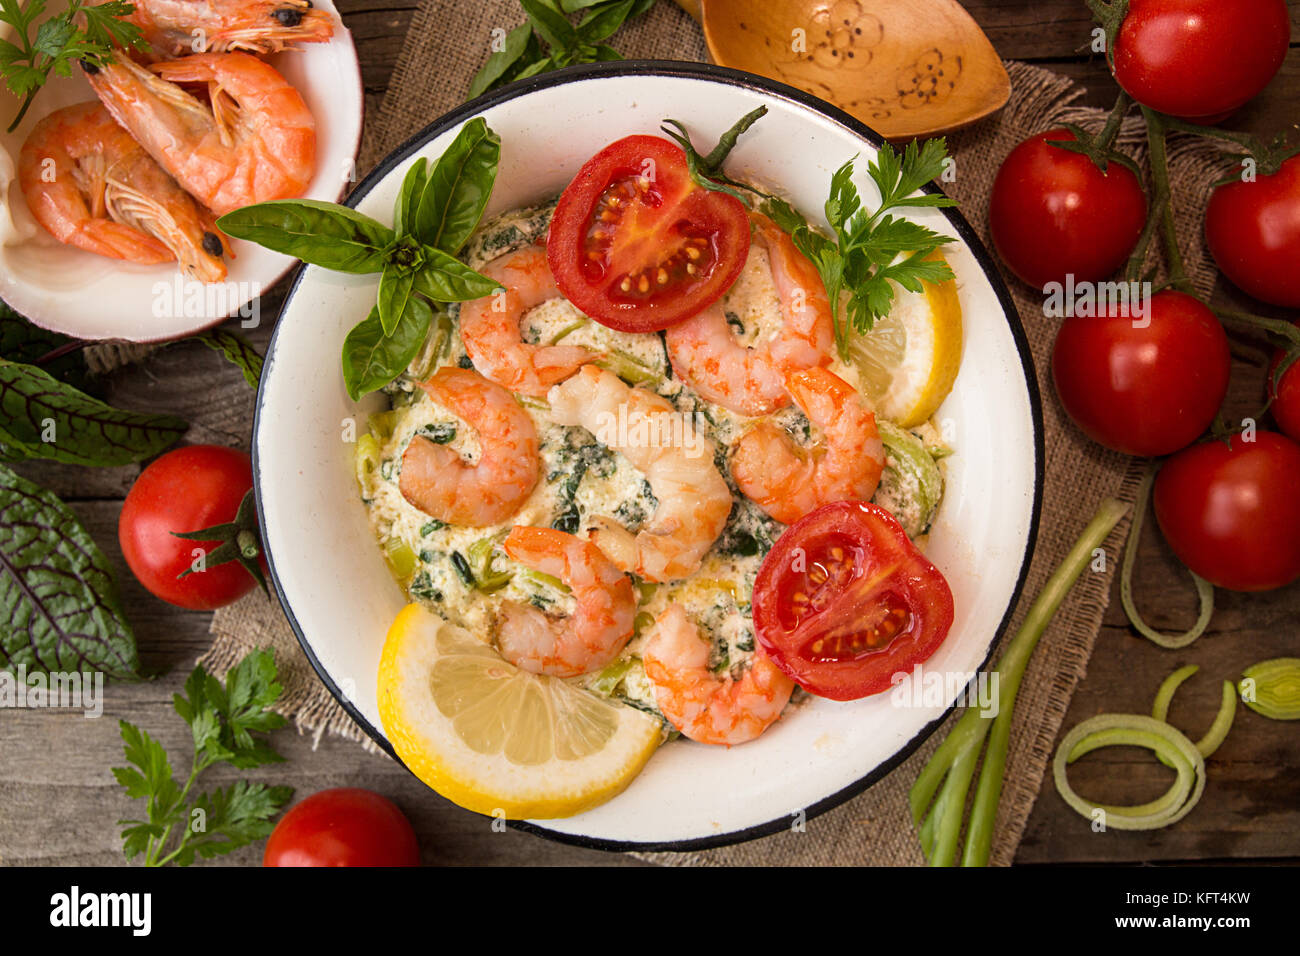 Overhead of dinner table. Seefood casserole with leek, cheese, grilled shrimps, serving with tomato cherry, parsley - Stock Image